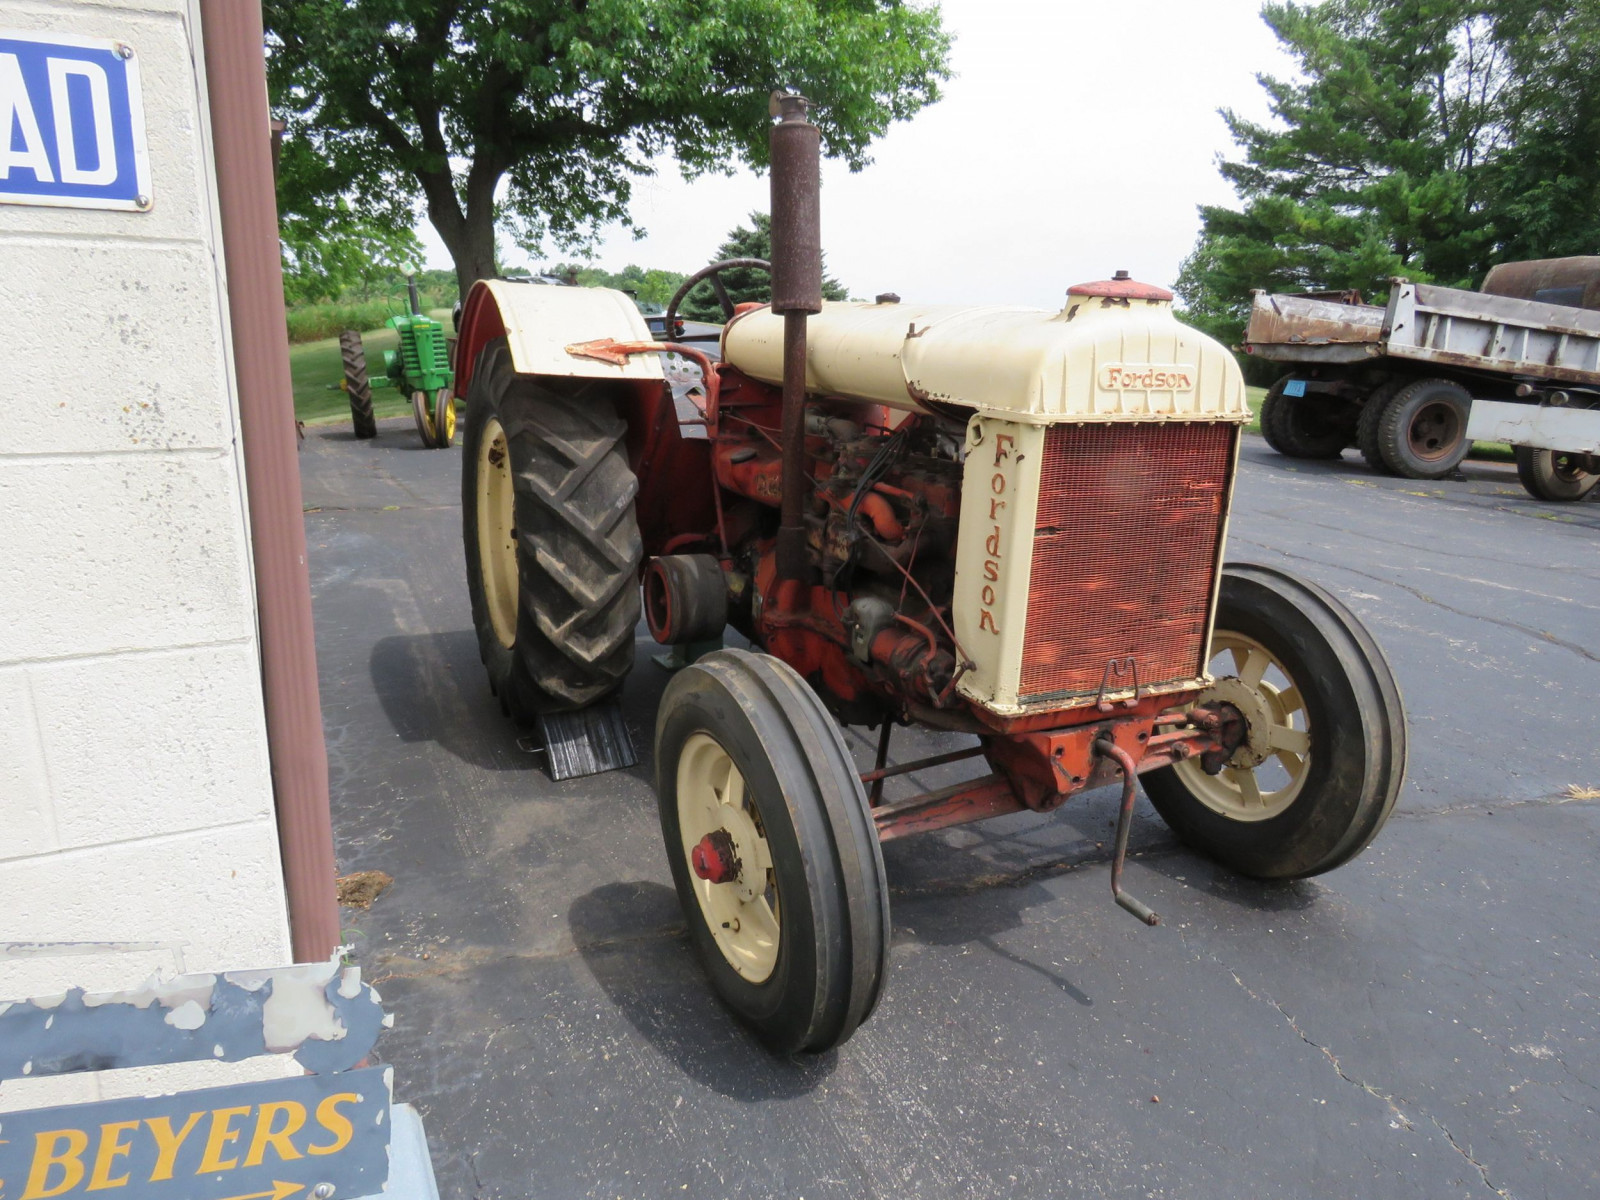 1936 Fordson N Tractor - Image 1